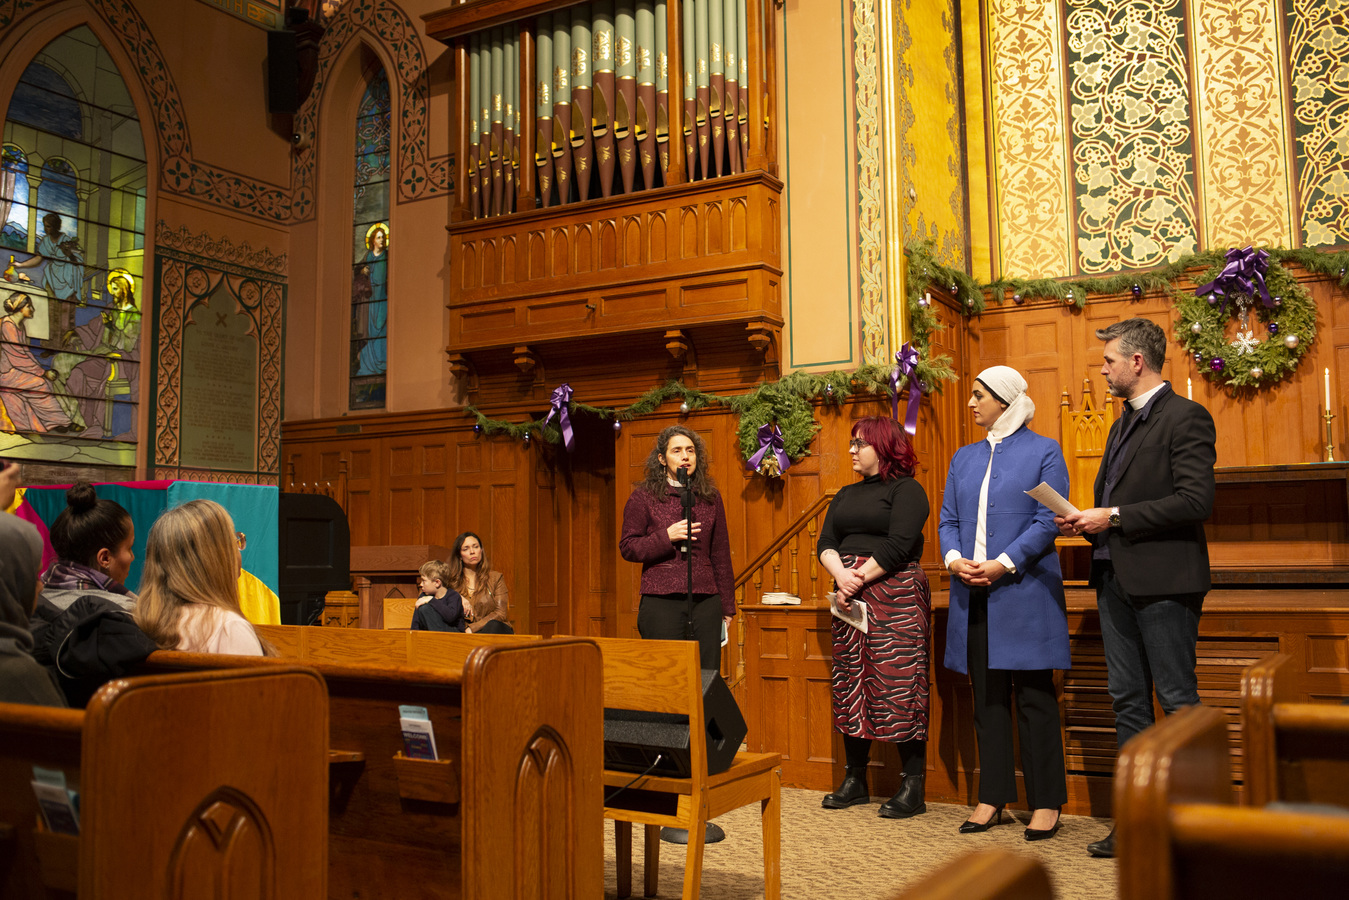 Say No To War Interfaith Peace Vigil Middle Collegiate Church 1/7/20 Interfaith Prayers for Peace Rev. Chole Breyer, Madge Dietrich,Tahanie Aboushi & Will Critzman, Sr. Pastor West End Colliegiate Church